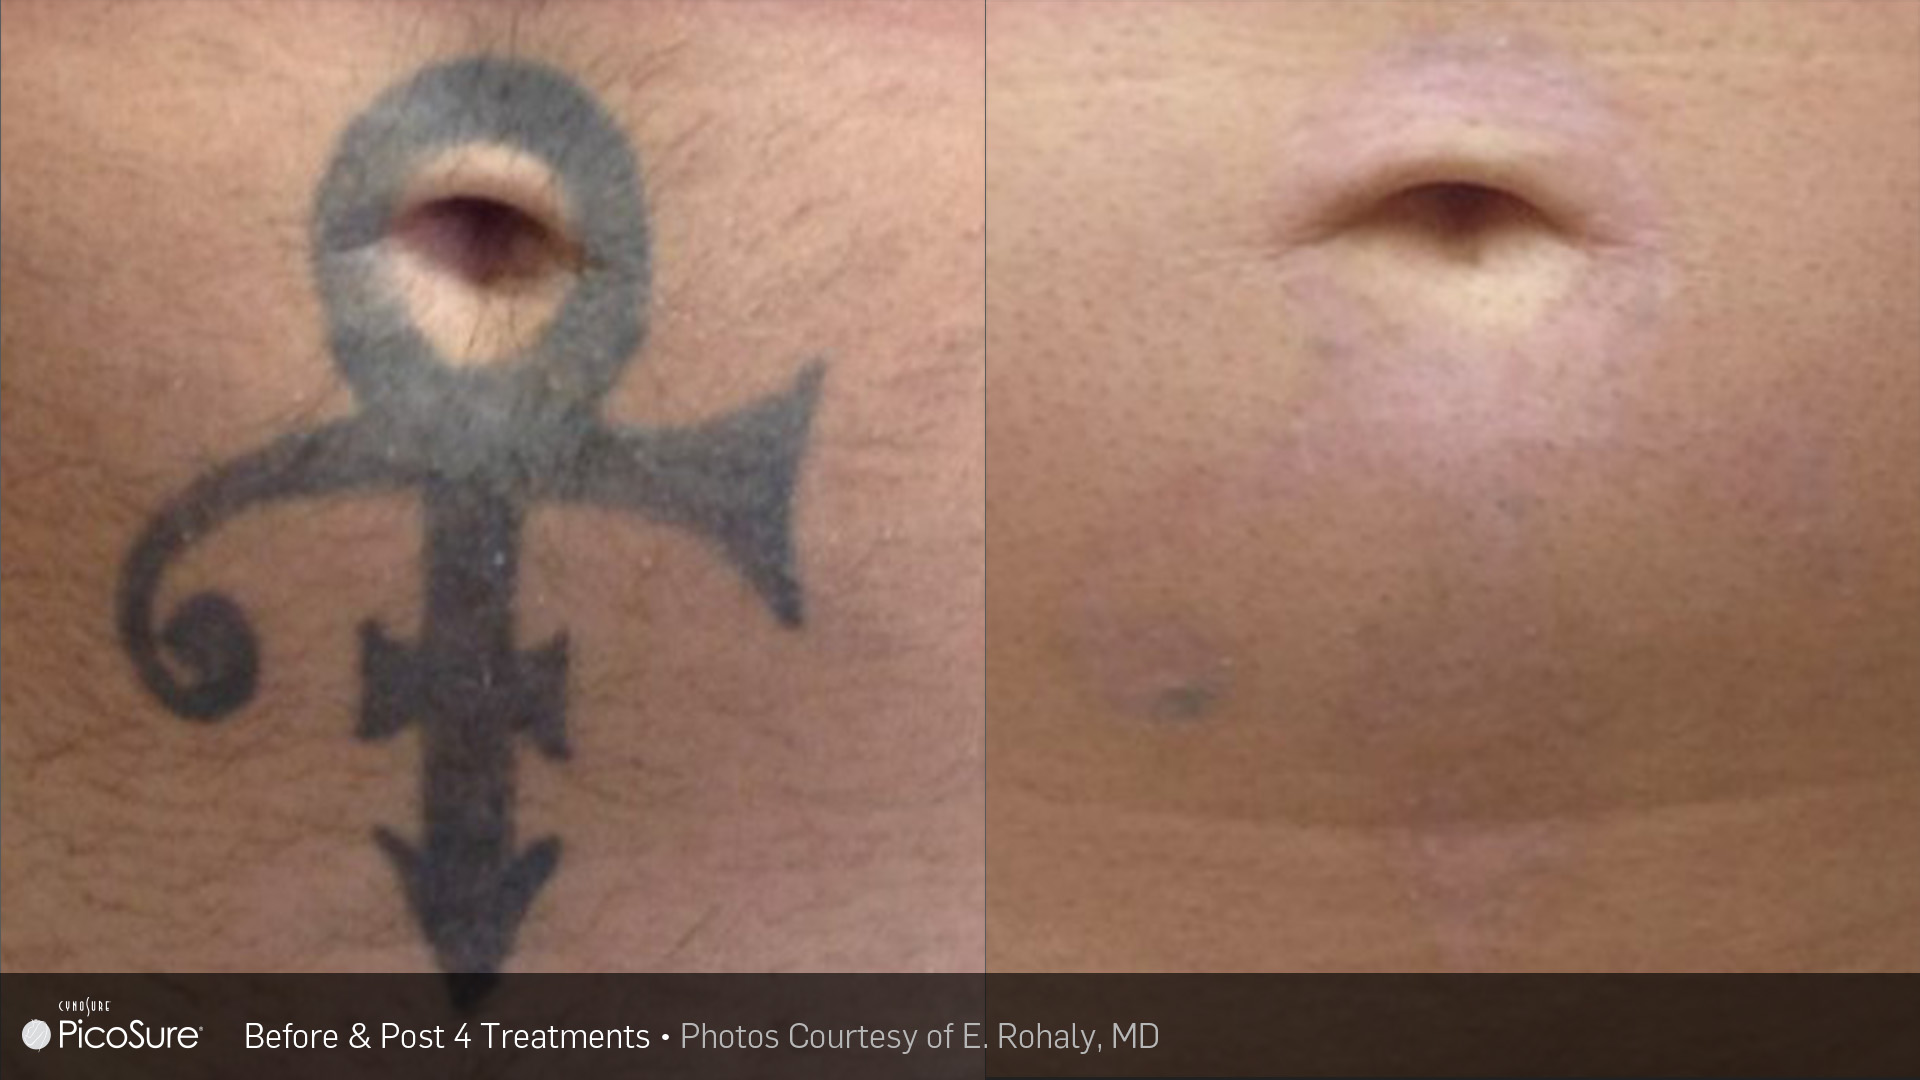 Laser Ink Picosure Laser Tattoo Removal Specialists Bedford New